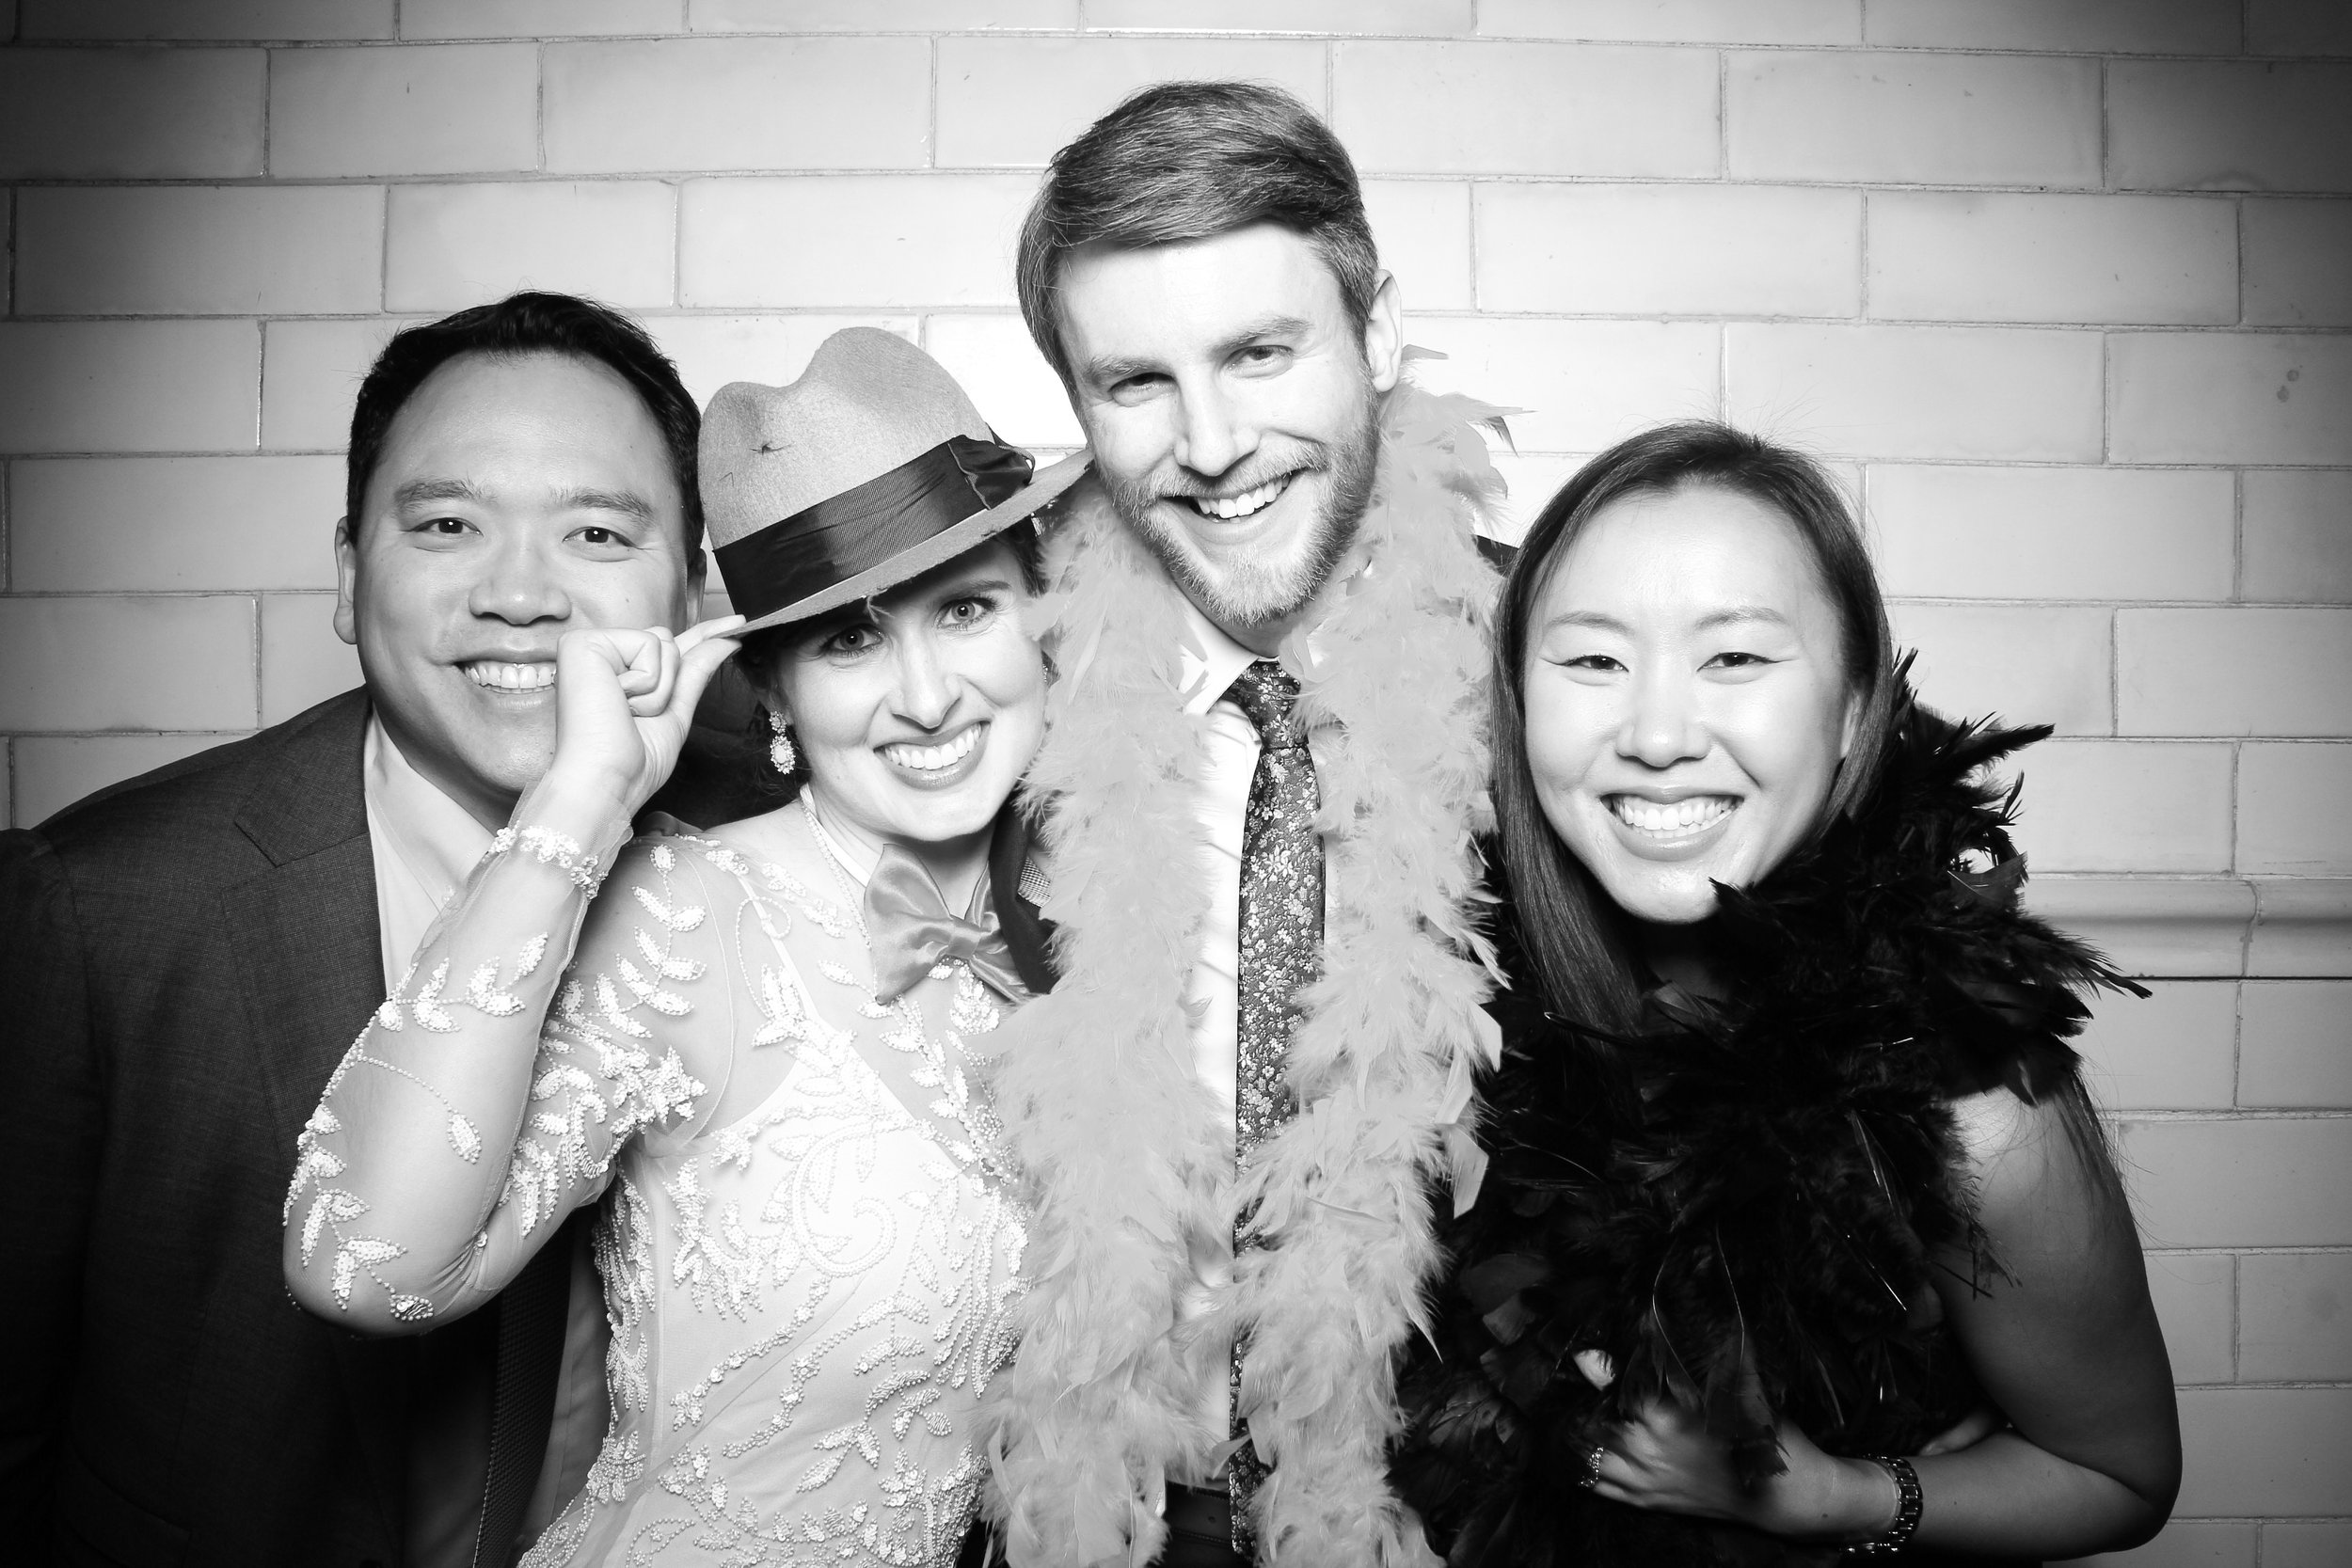 Firehouse_Chicago_Edgewater_Wedding_Reception_Photo_Booth_12.jpg